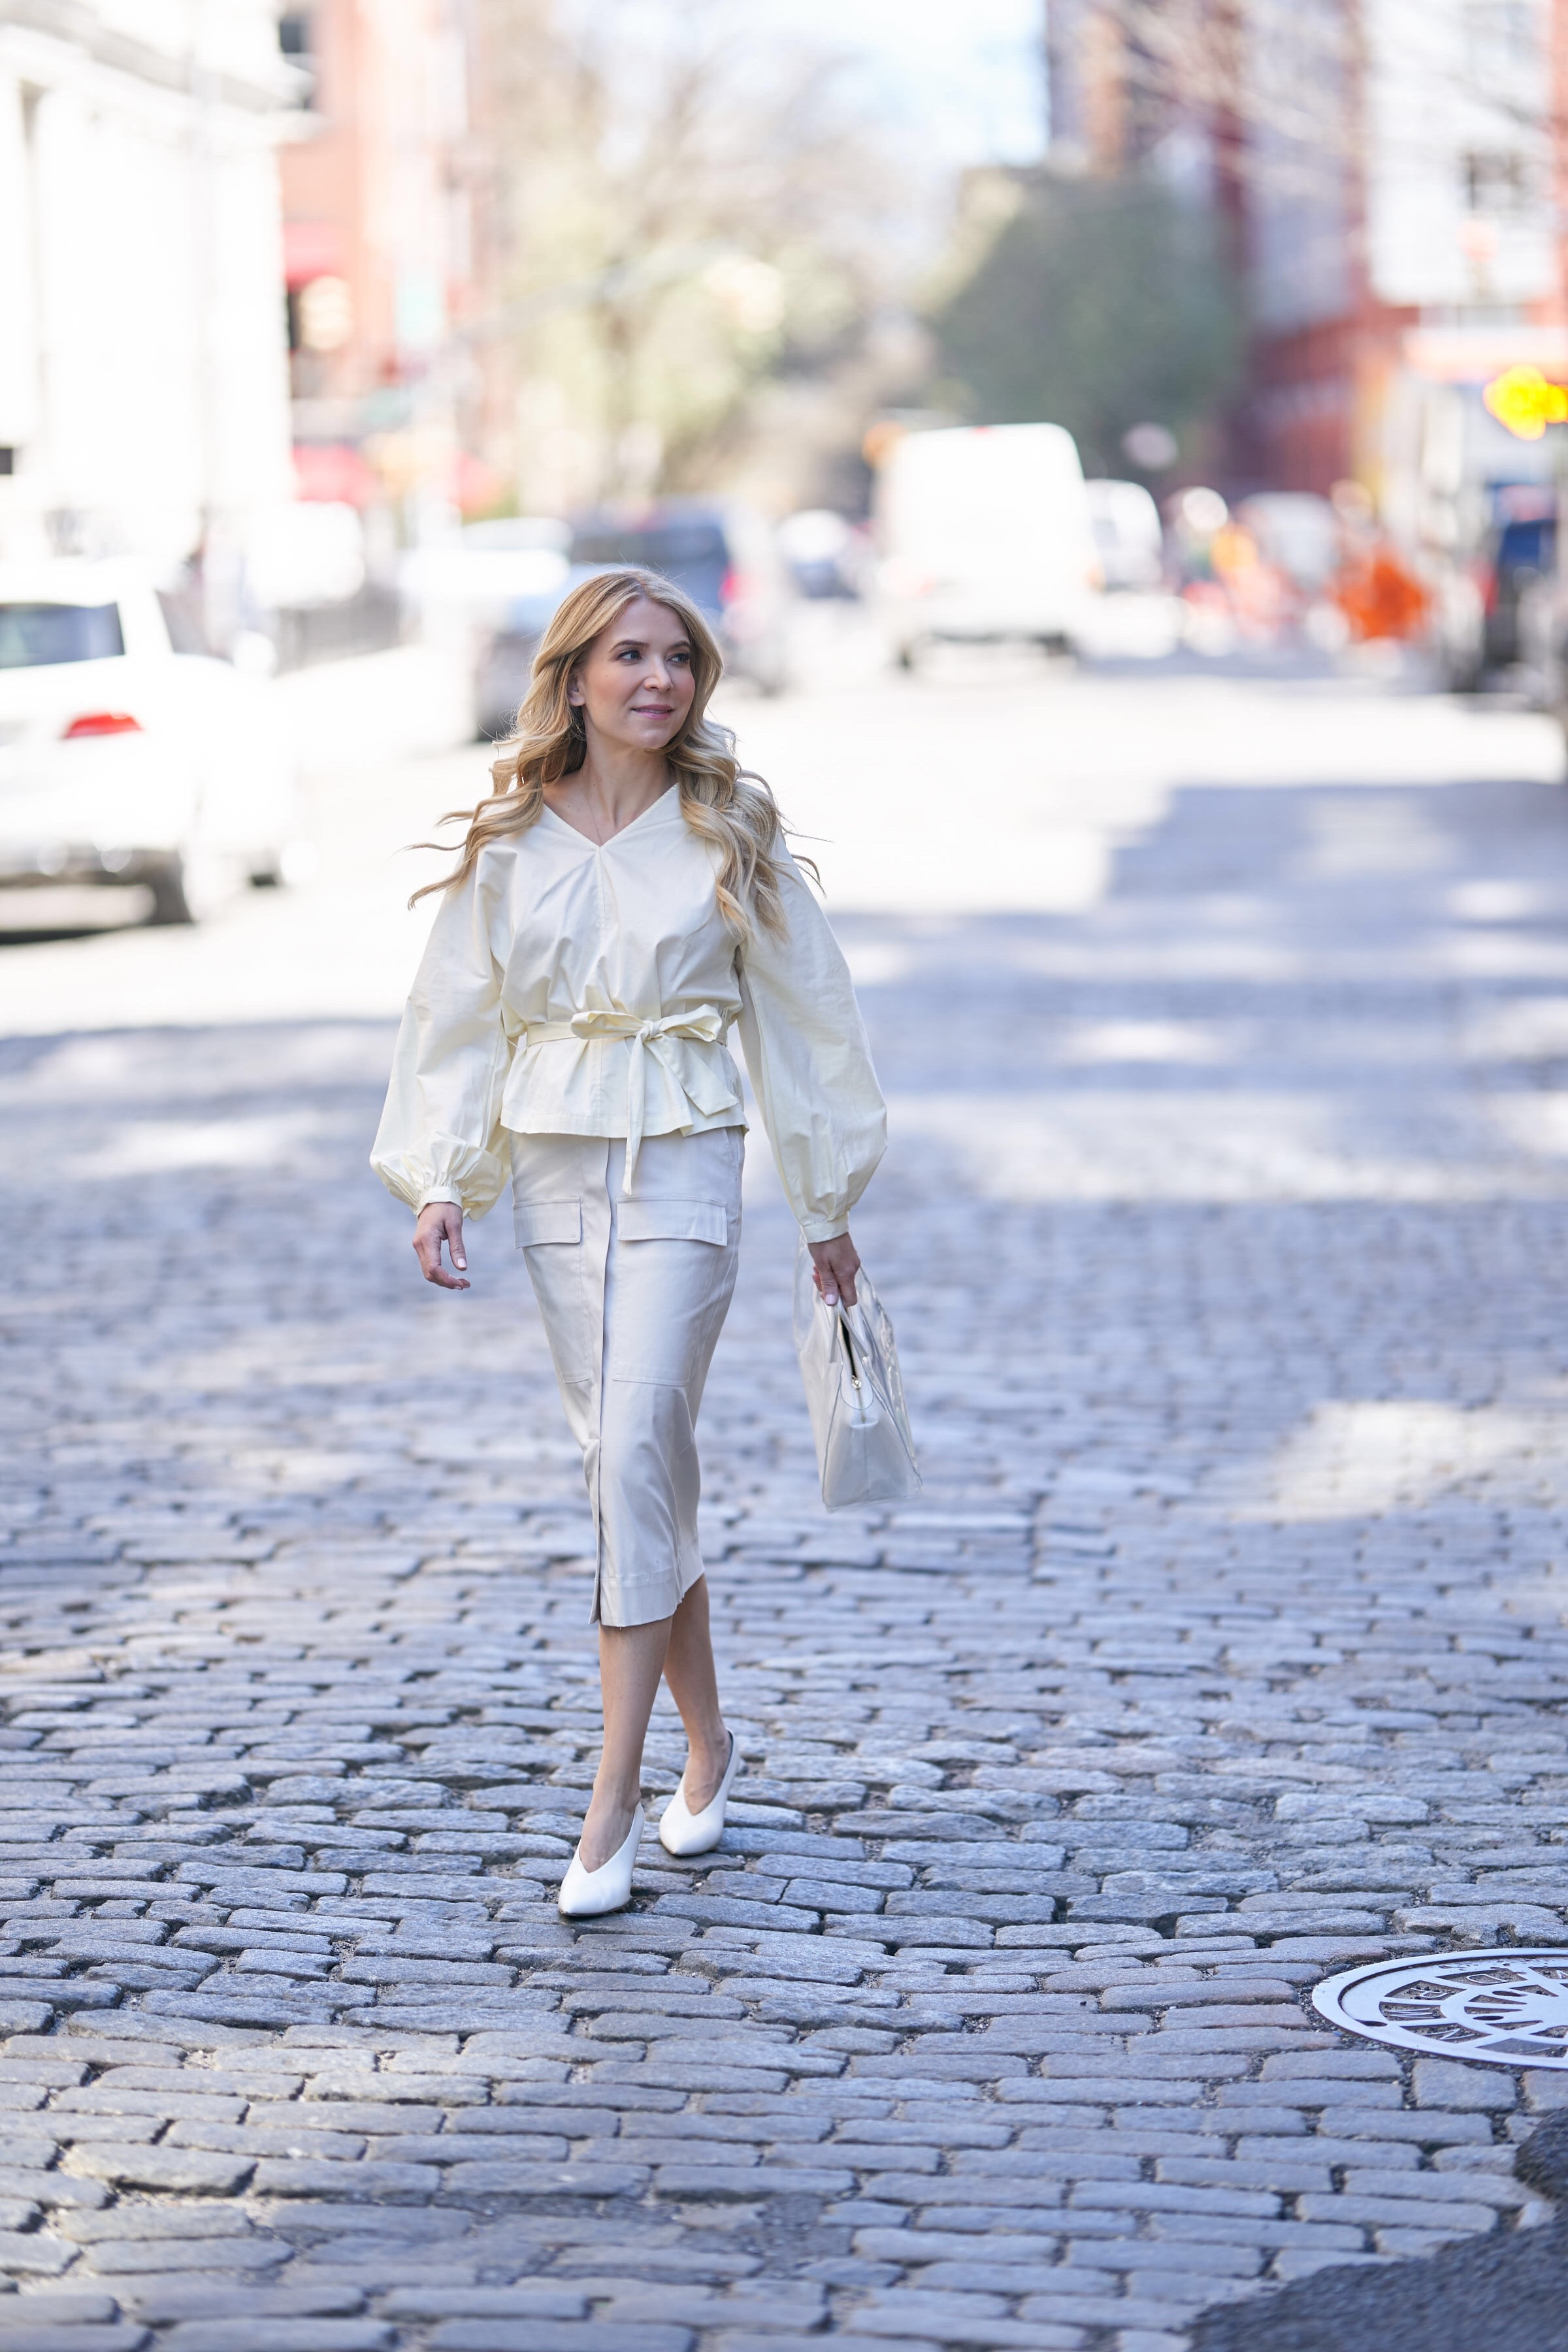 Work style for spring, NYC fashion, NYC street style, Laura Bonner, About the Outfits